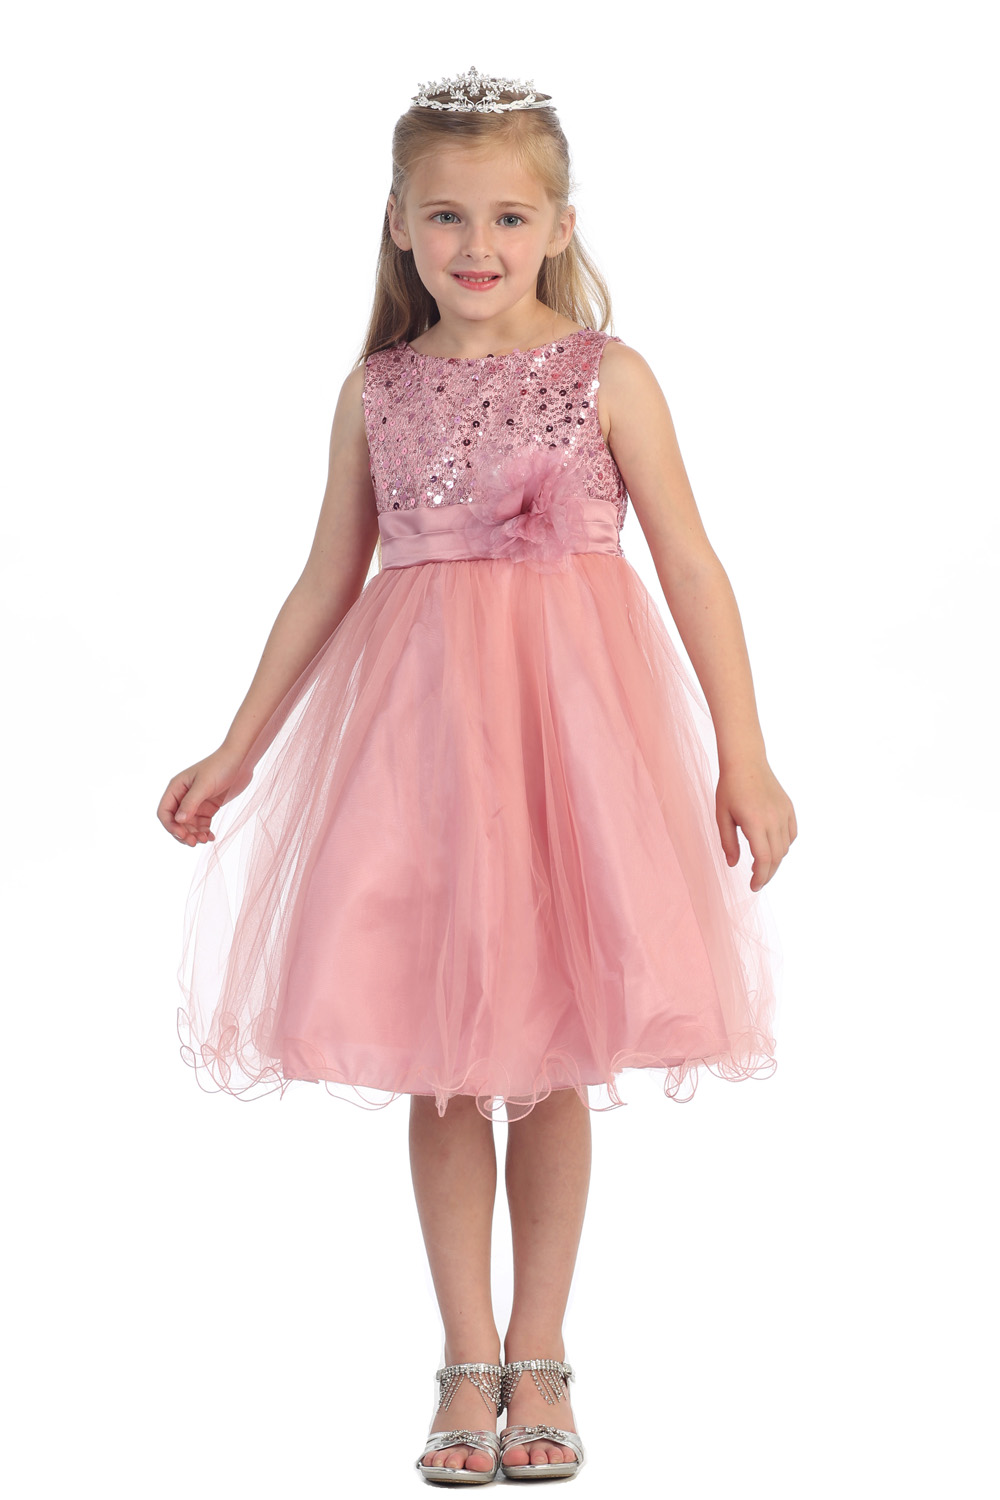 Flower Girls Dresses For Wedding Gowns Sequin Girl Birthday Party Dress Knee-Length Kids Prom Dresses Mother Daughter Dresses short flower girls dresses for wedding gowns knee length kids prom dresses lace dress girl tulle mother daughter dresses